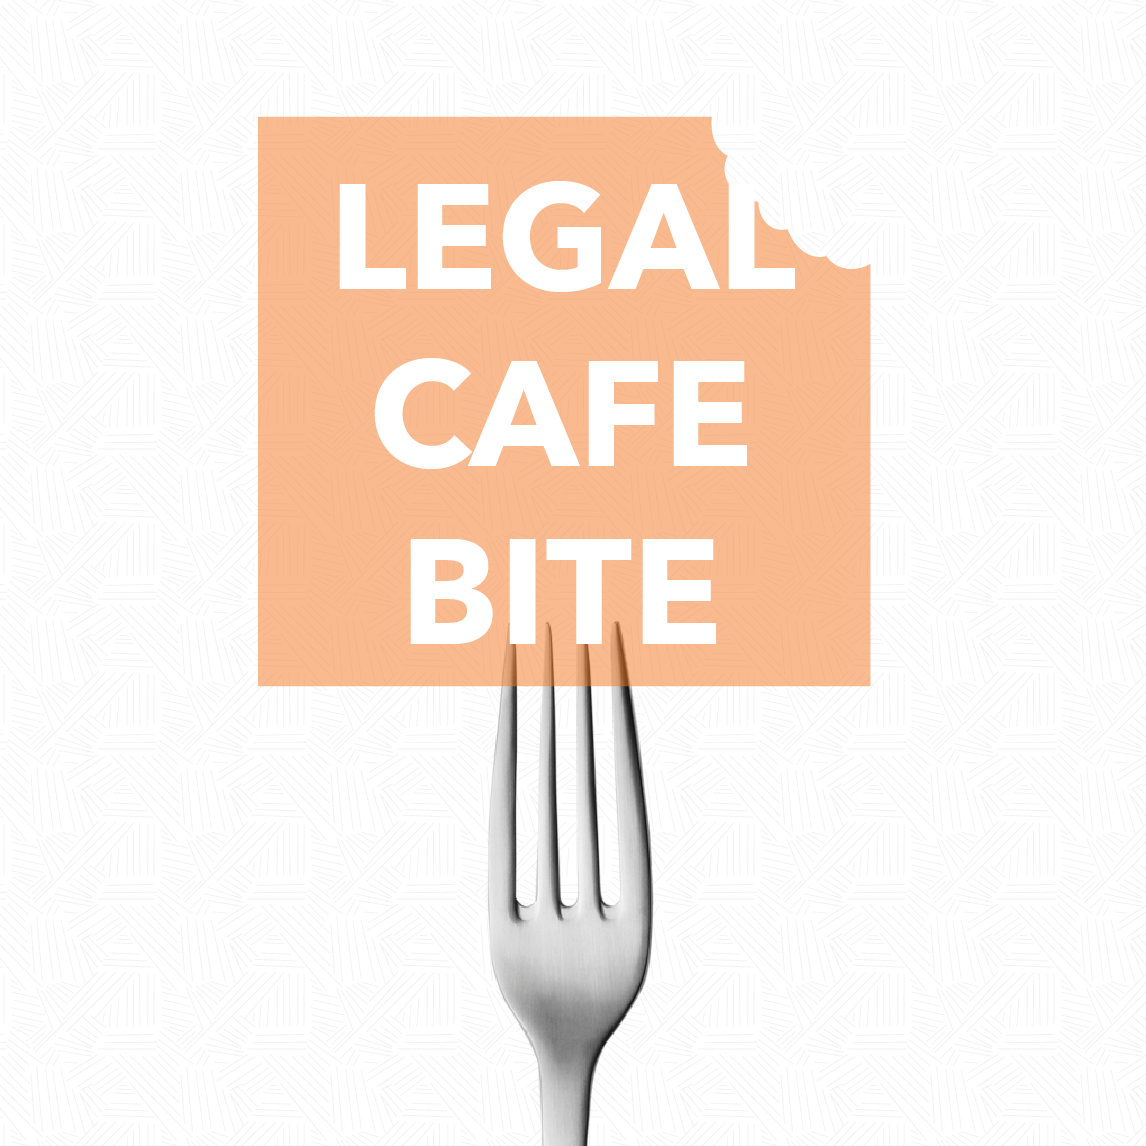 Legal Cafe bite!